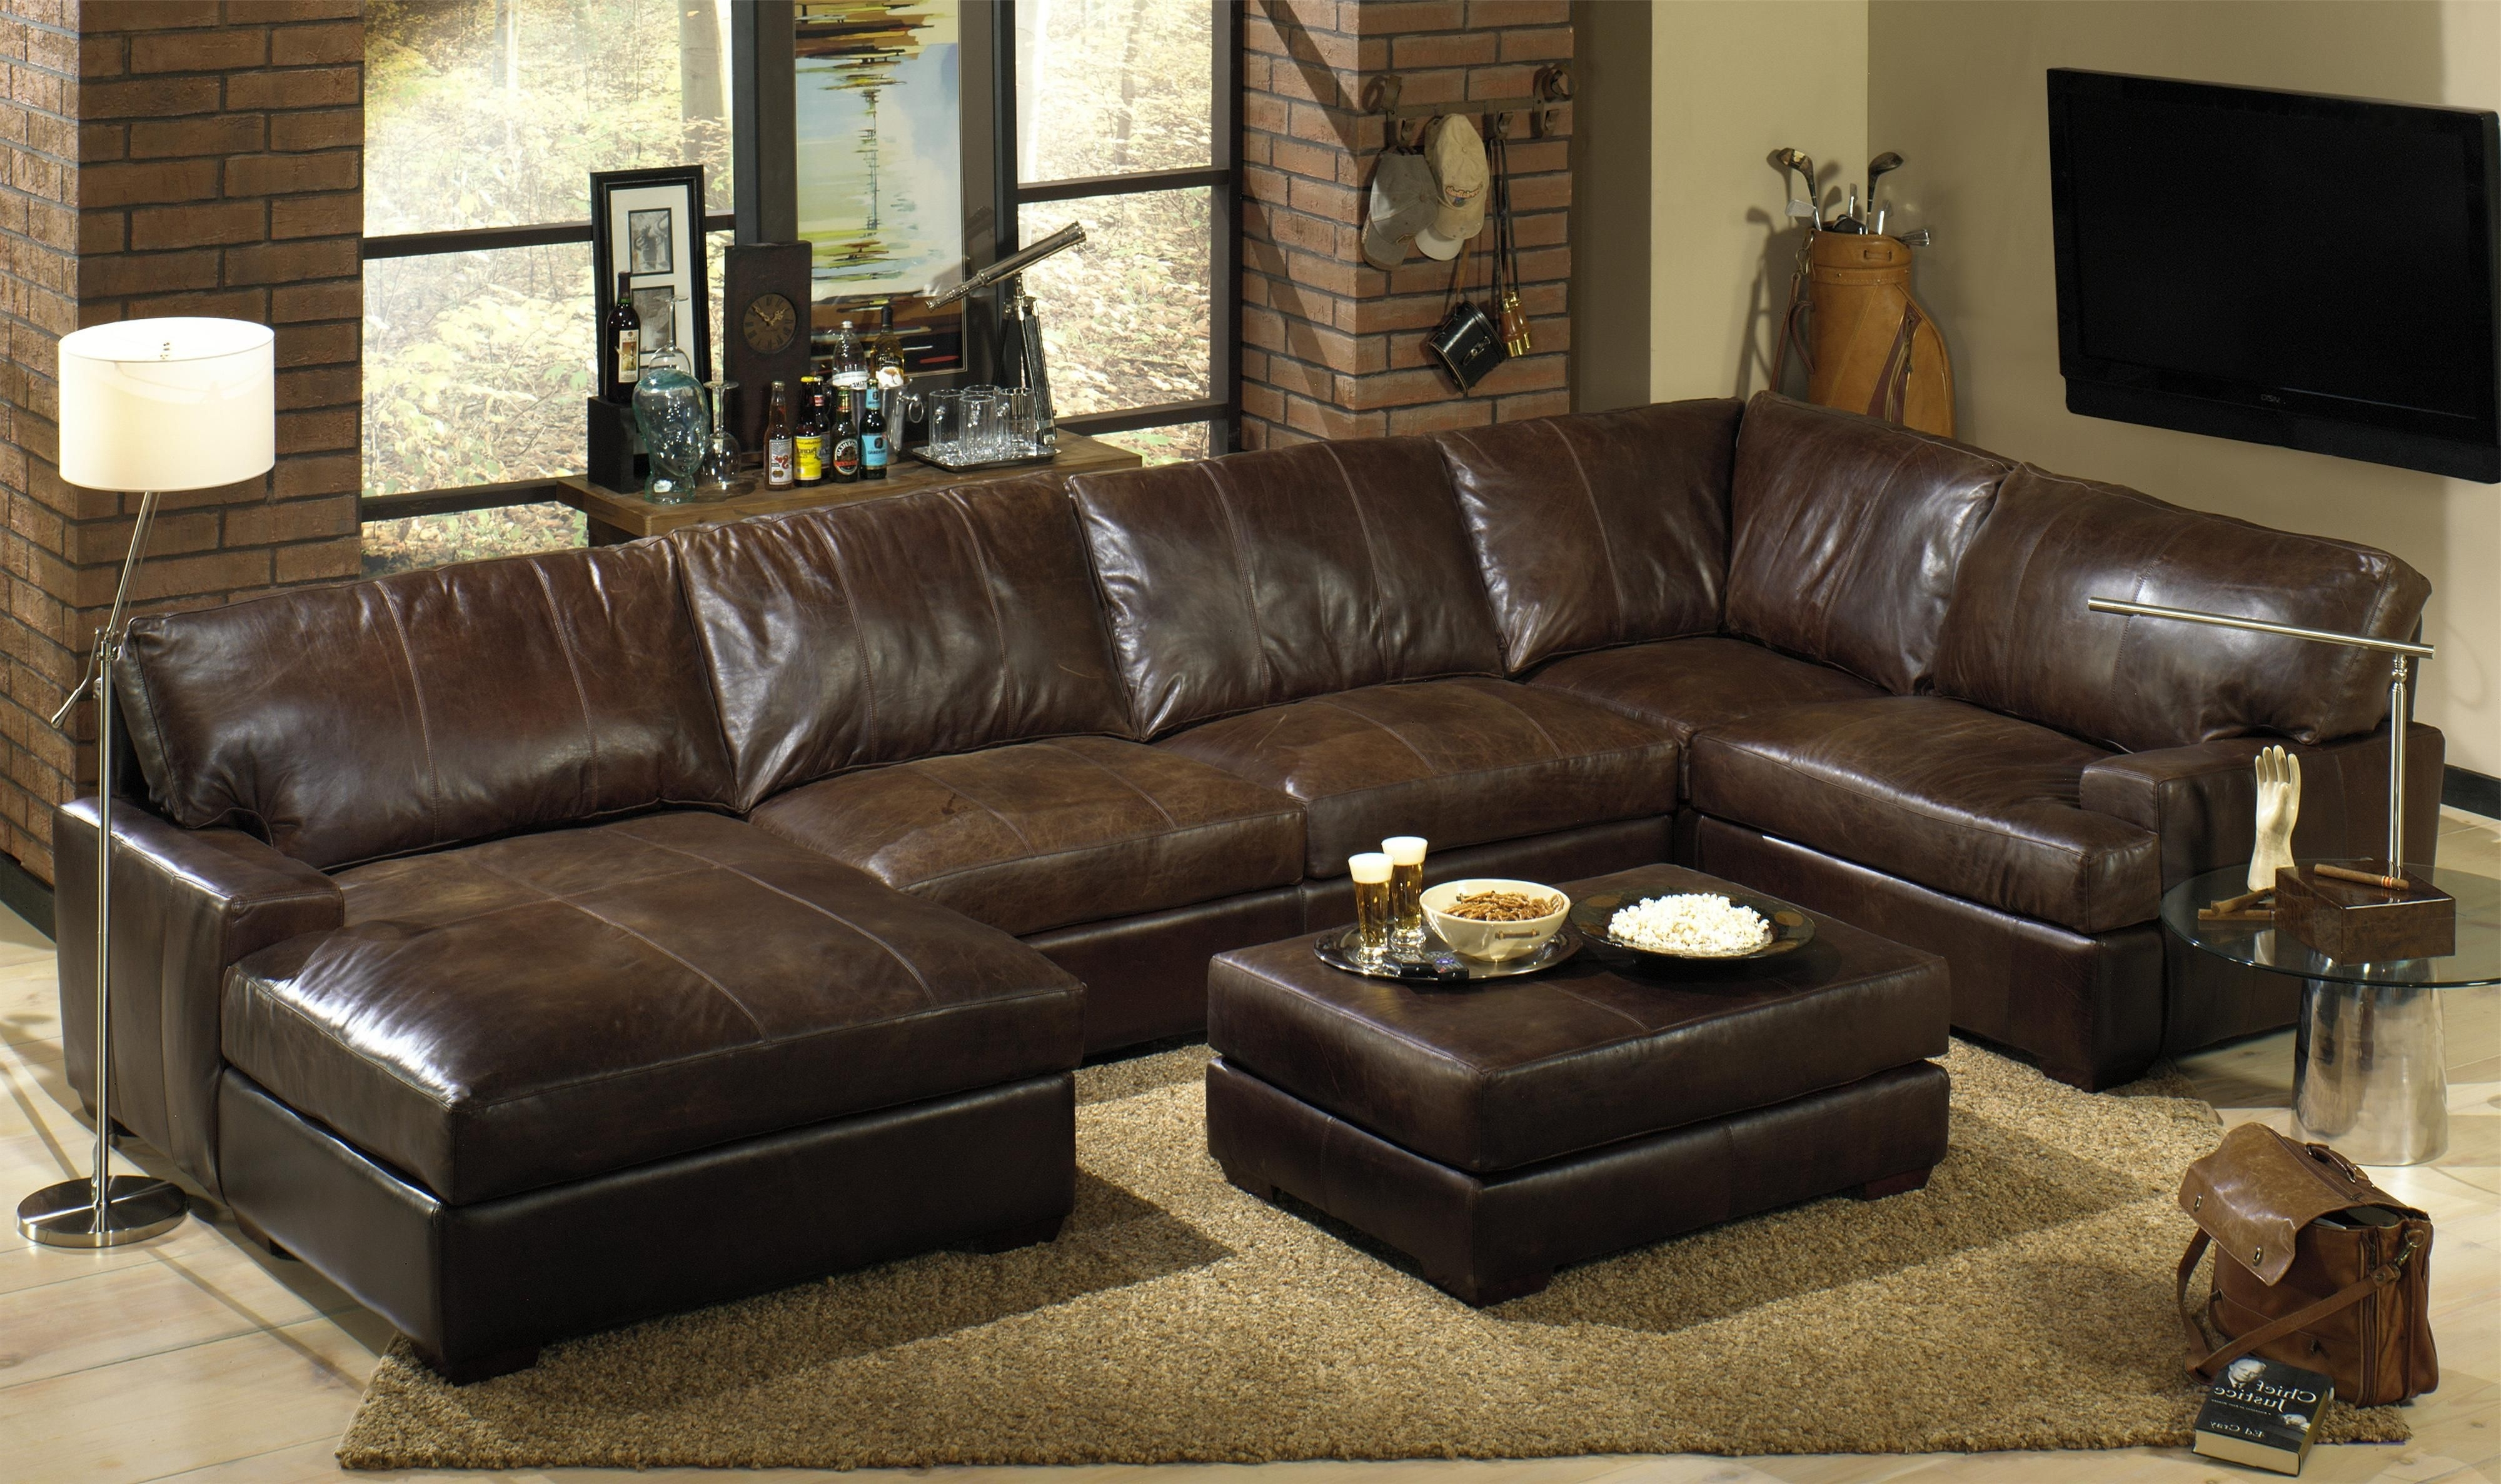 Well Known Comfortable Sectional Couches For Versatile Home Furniture Ideas With Regard To Sectionals With Chaise And Ottoman (View 19 of 20)